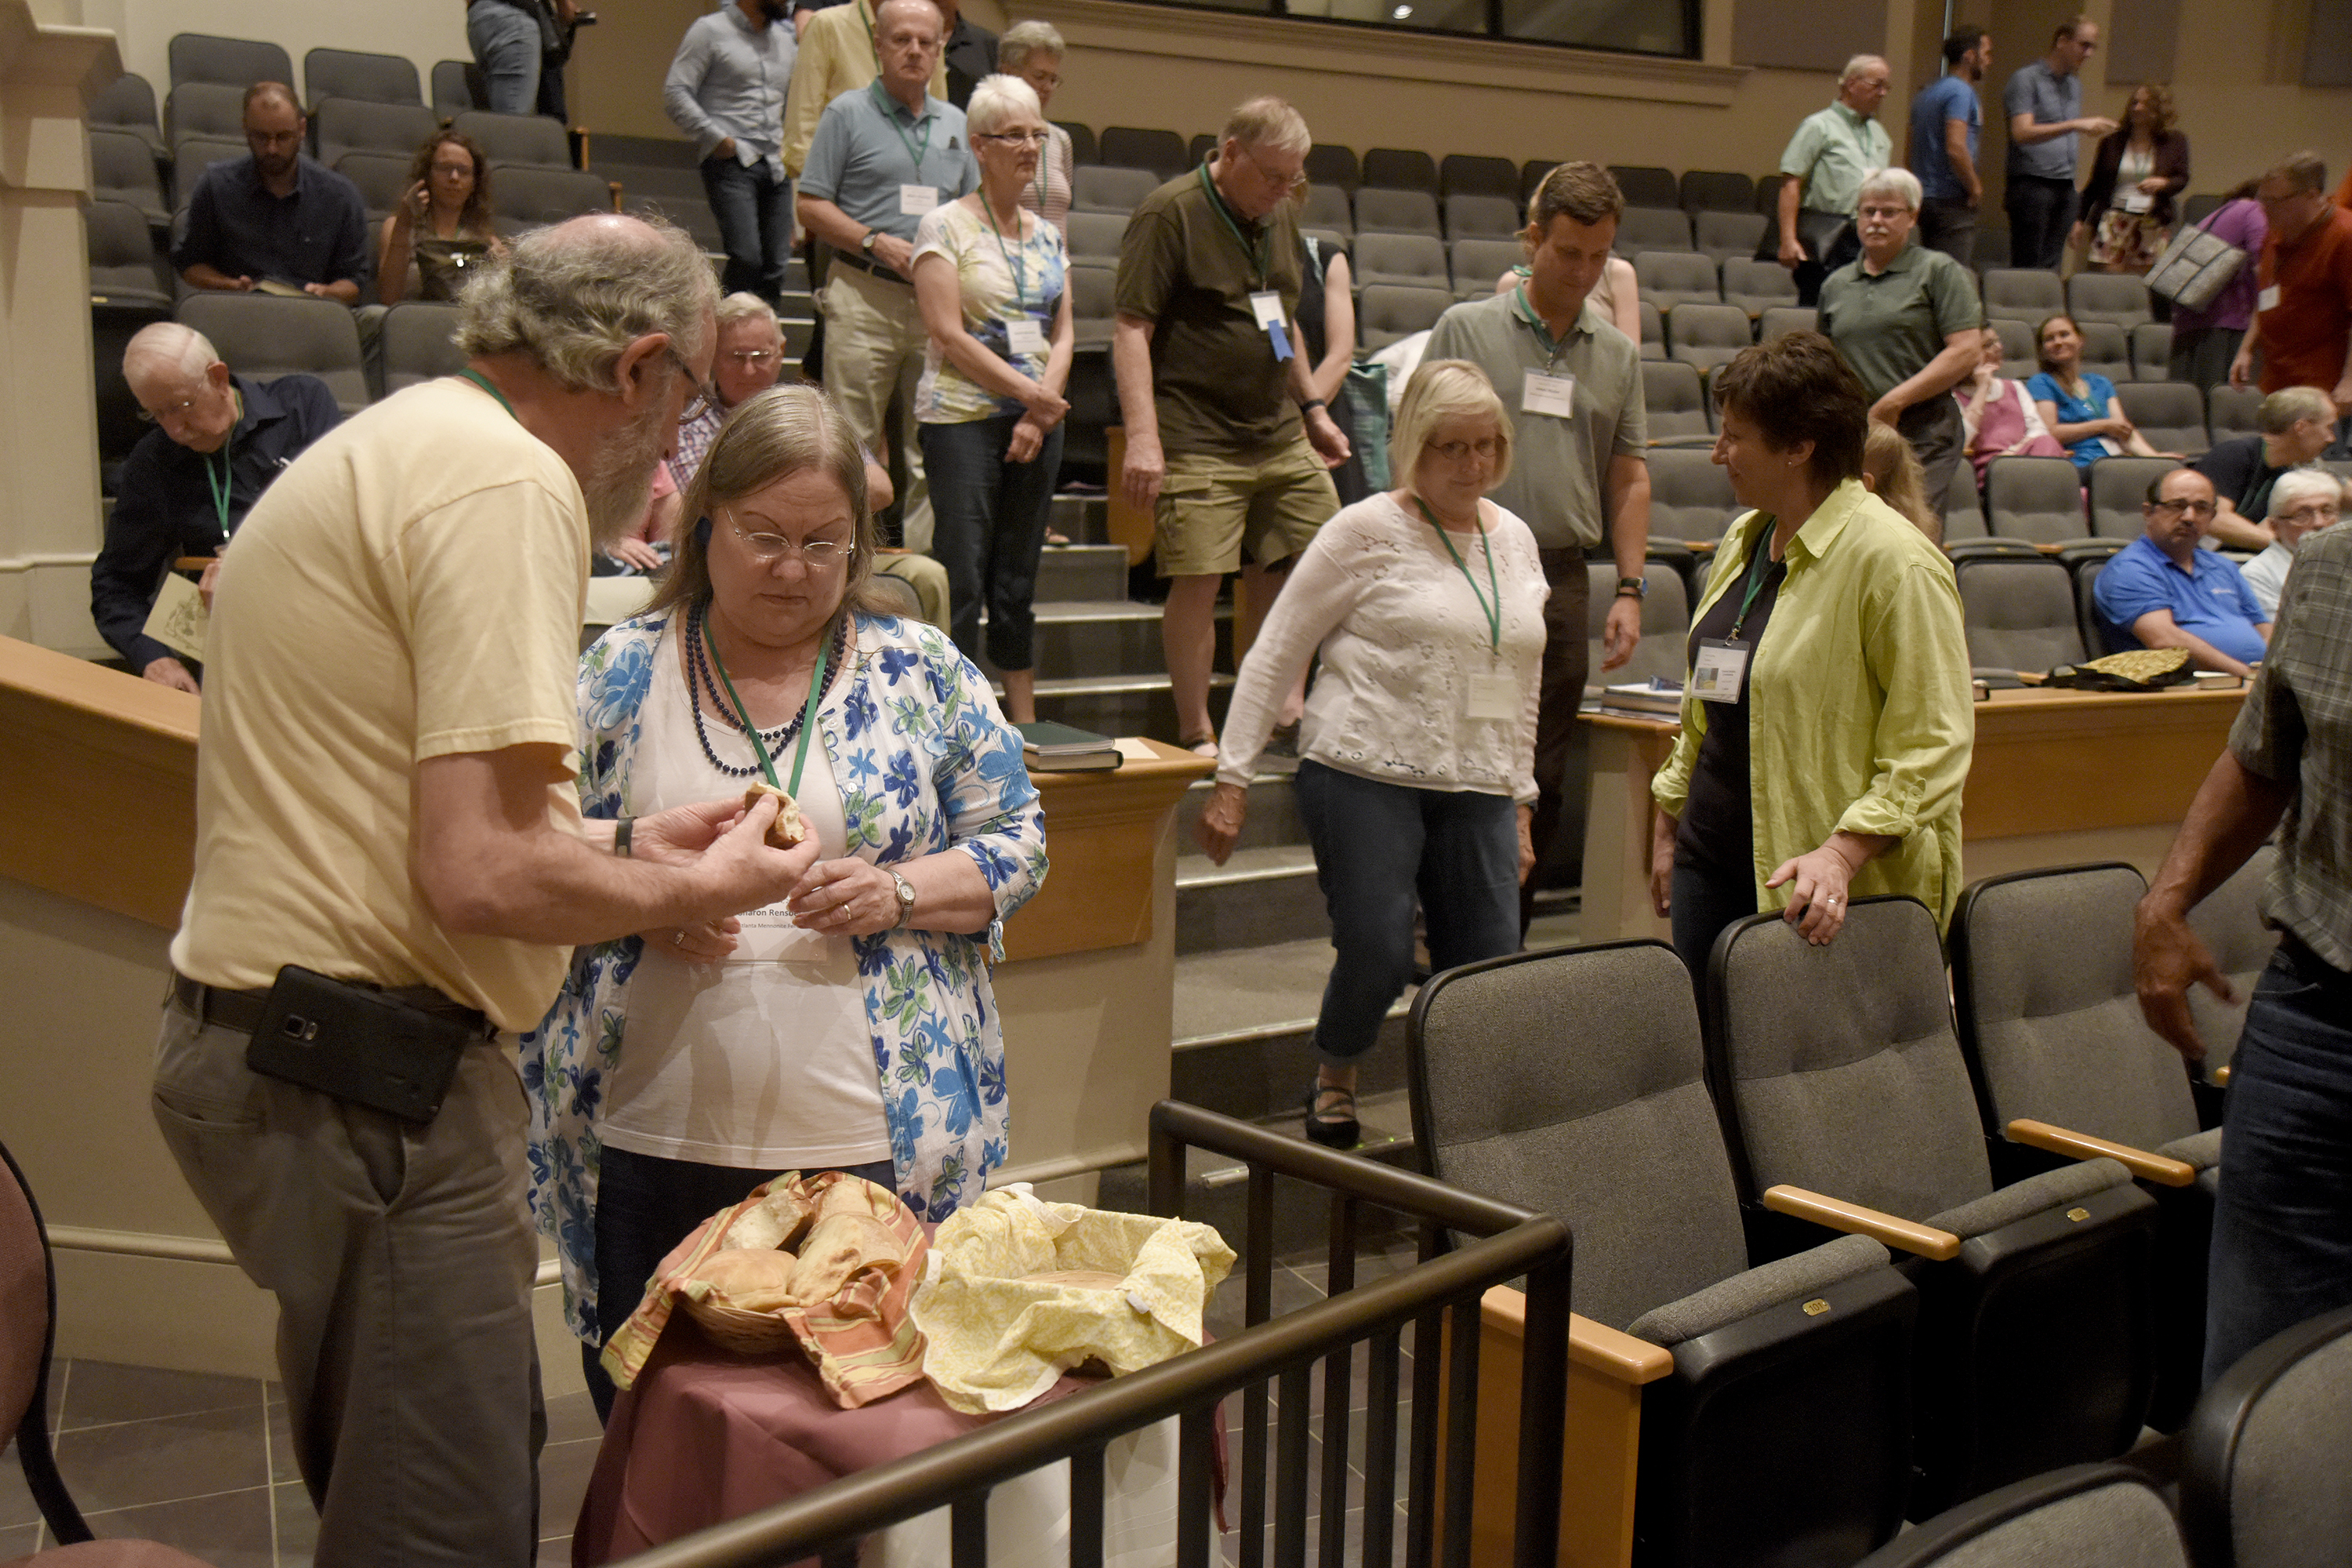 Participants take communion bread during the Saturday morning worship service in Yoder Recital Hall during the Central District Conference, Friday, June 23, 2017, at Bluffton University, Bluffton, OH. Photograph by J. Tyler Klassen